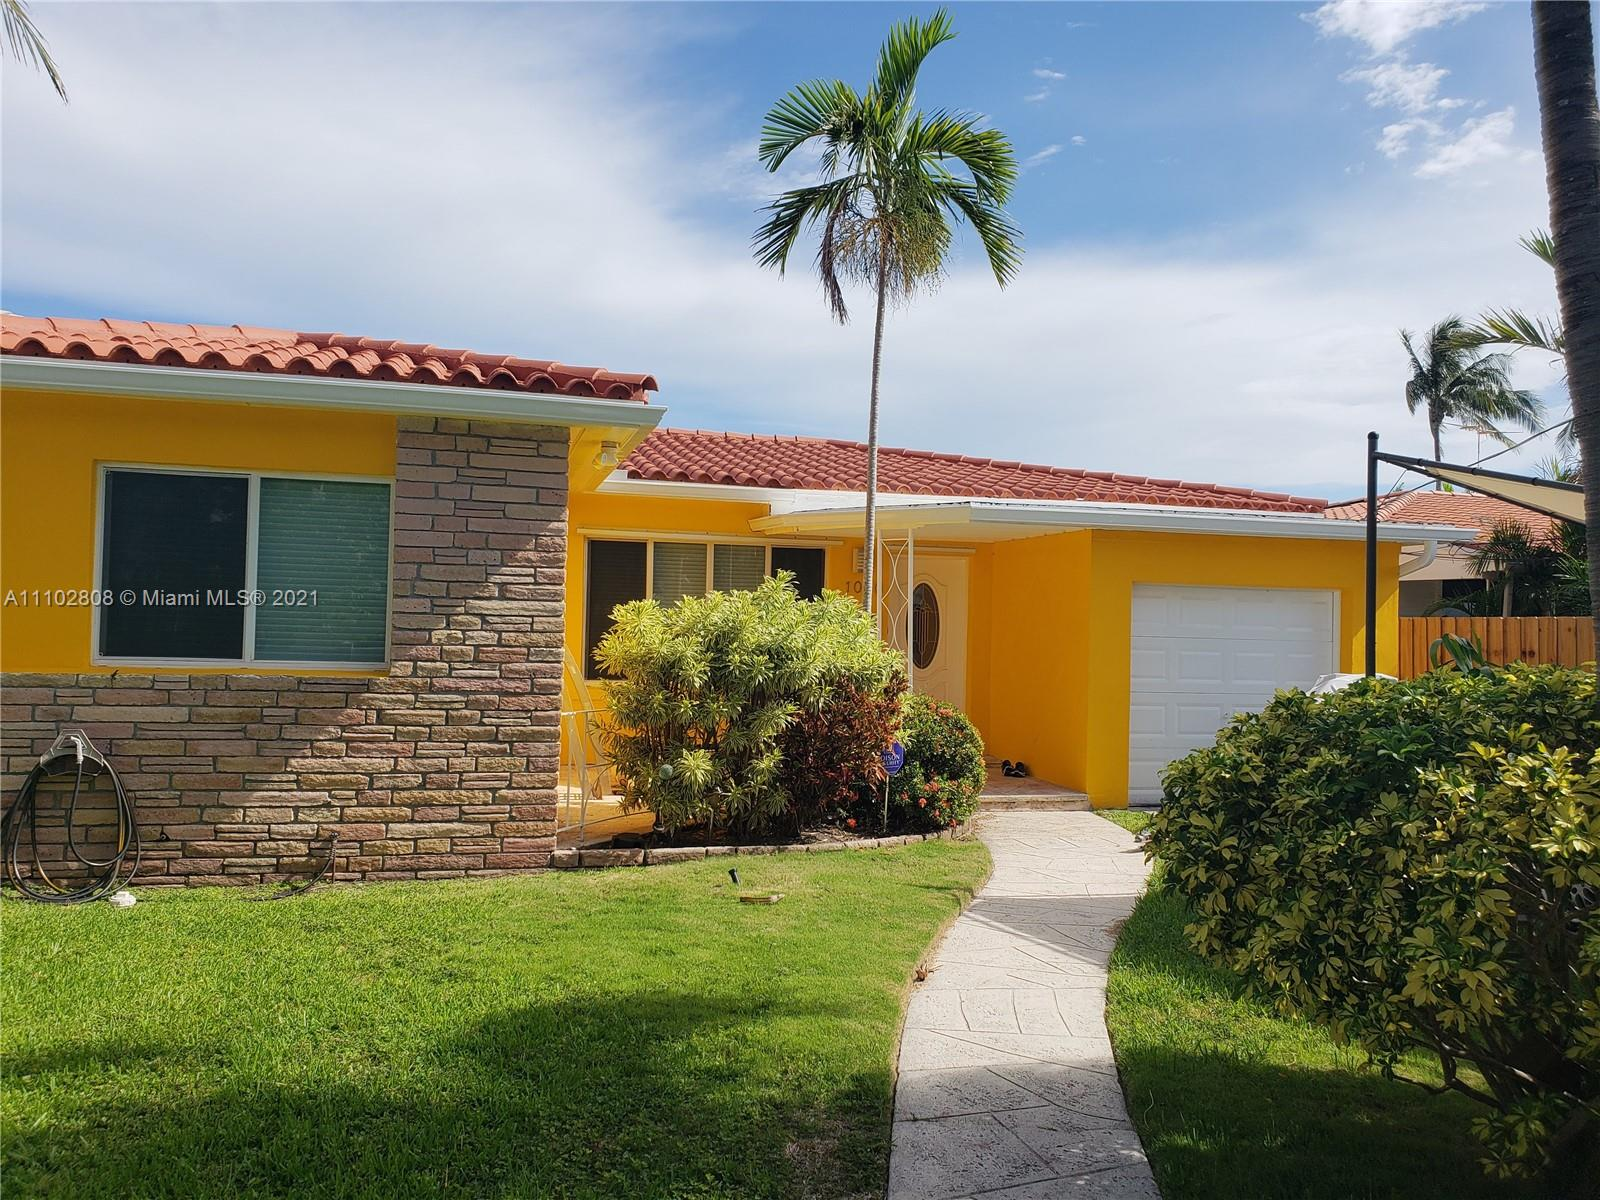 Owner agent occupied home can be shown with advanced notice.  Home is sold AS-IS.  Guard gated island, South facing orientation.  Close to SOBE, close to airport, 1.0 miles to Publix supermarket - Pharmacies 1.0 miles to services.  .7 miles distance to beautiful beaches, less then 10 minutes to haulover inlet and famous sandbar. Quiet, convenient, great schools, community lap pool free for residents.